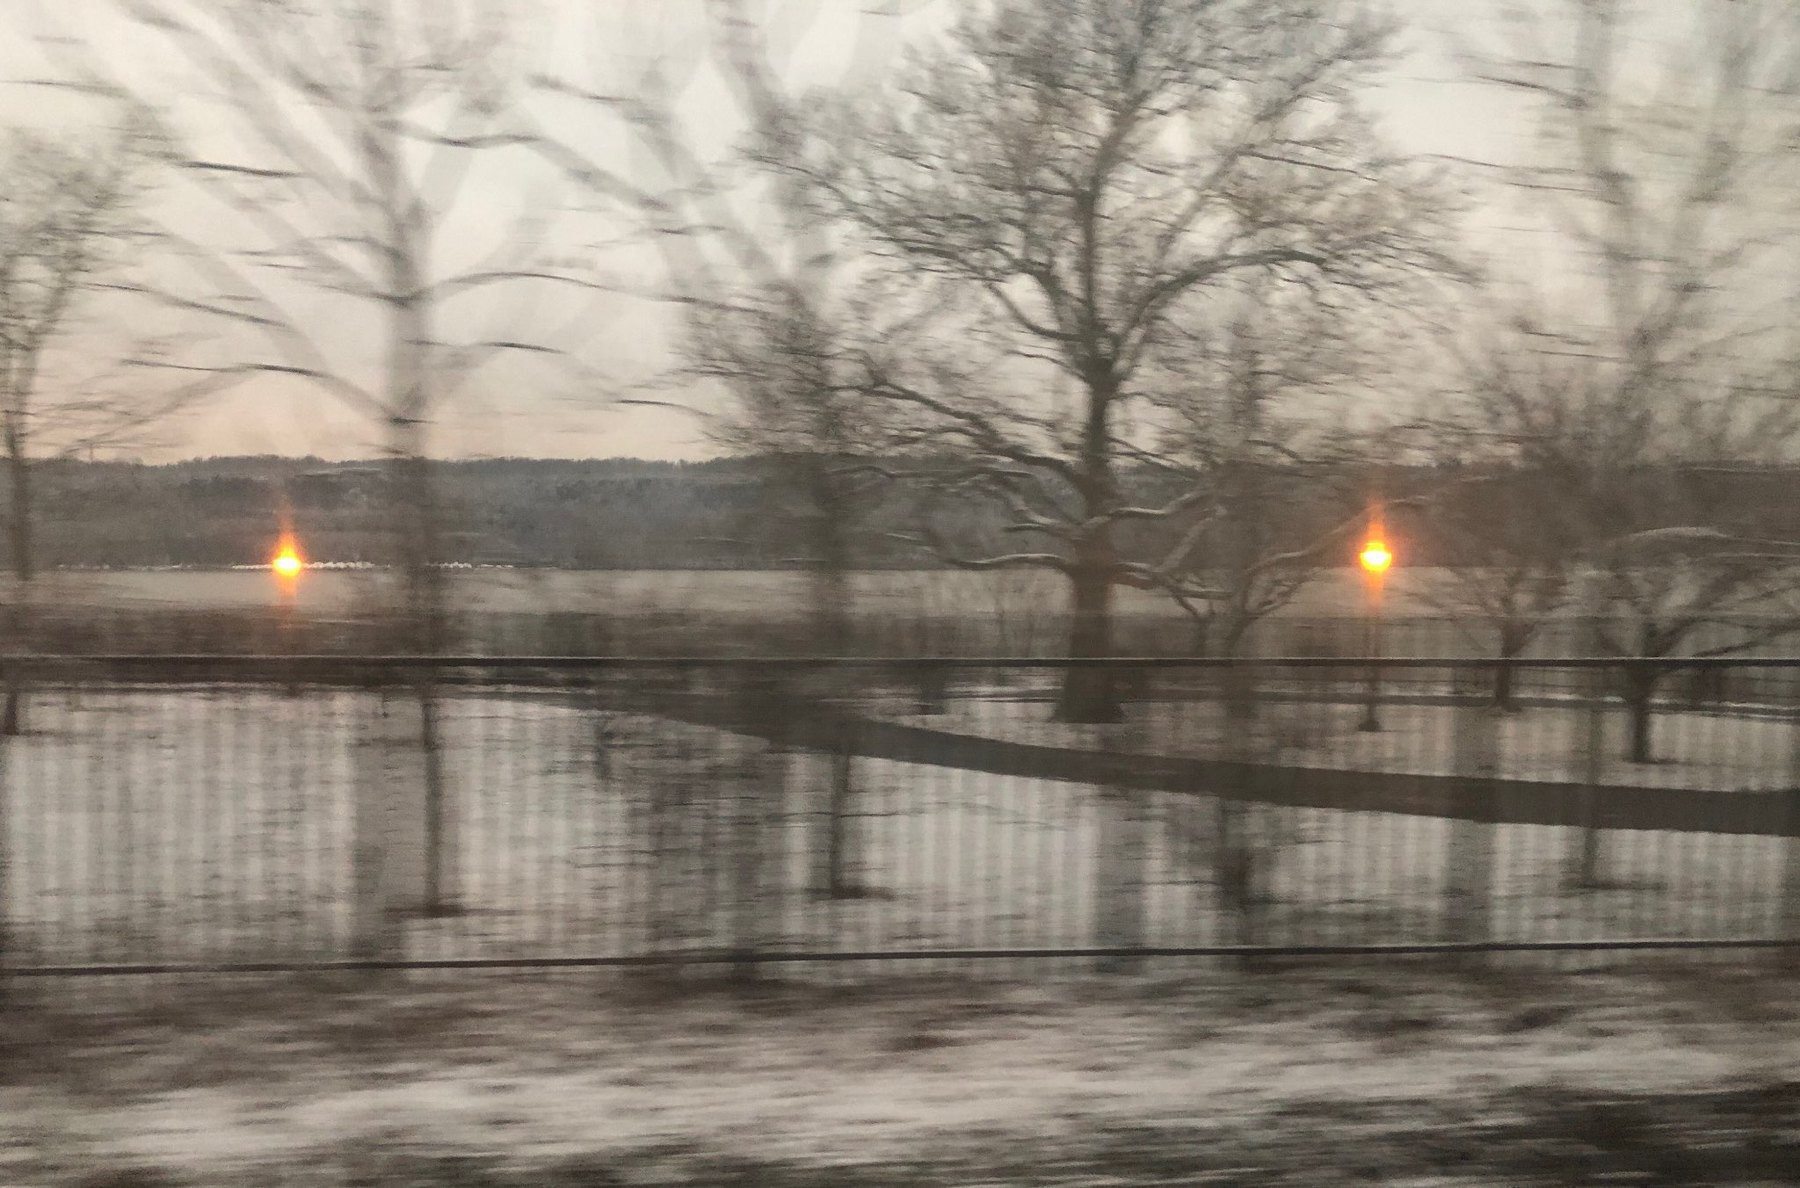 Snowy view of the Hudson river in the early morning from the train. Old fashioned streetlamps are still lit and the trees are bare.